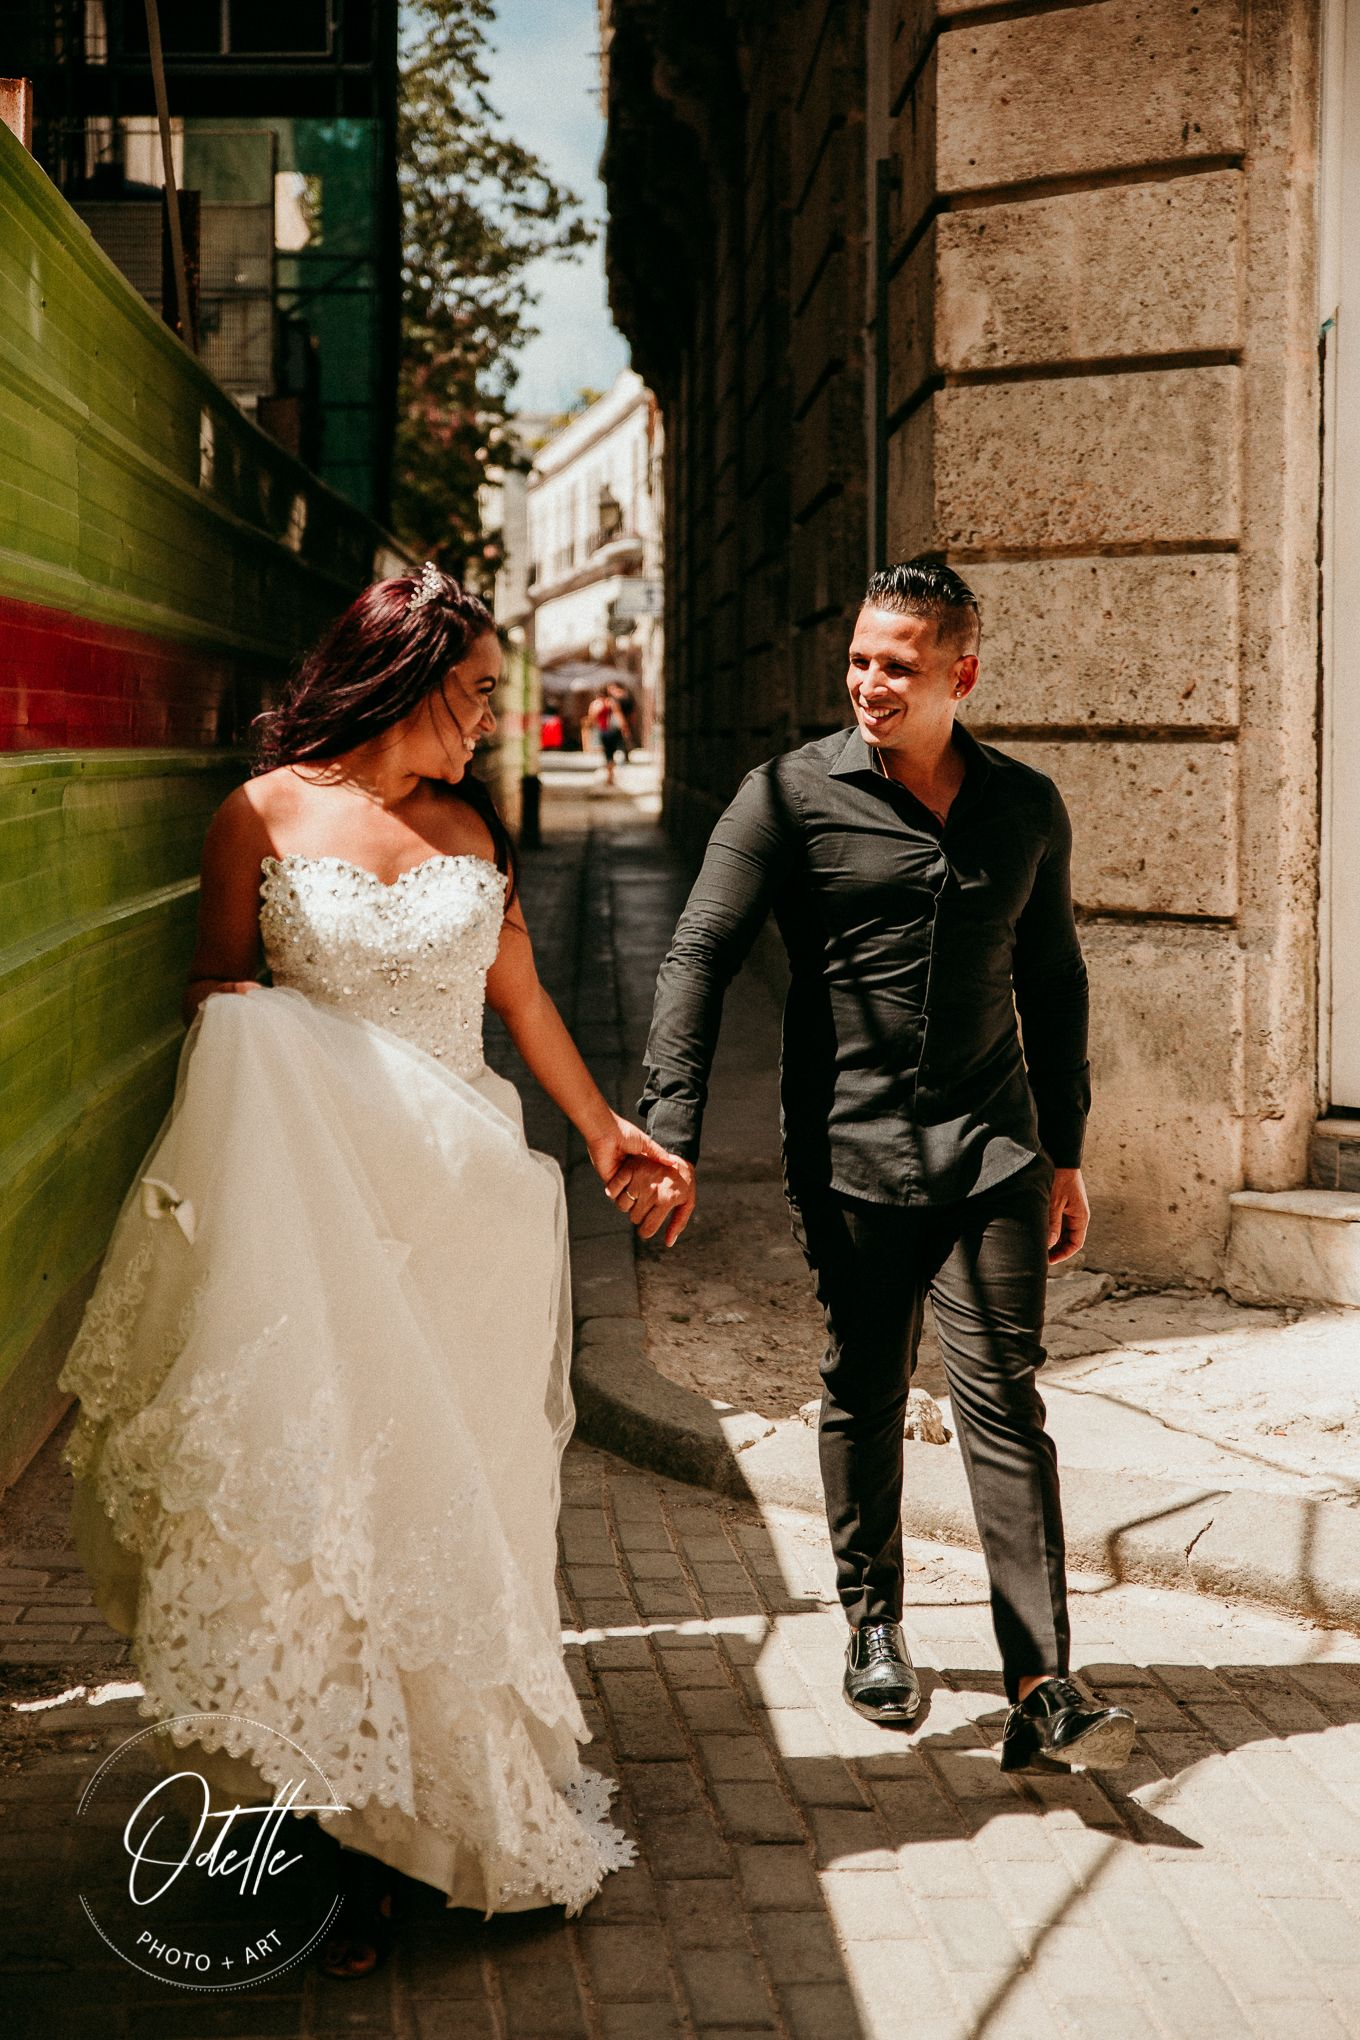 Wedding couple walking in an alley in Havana